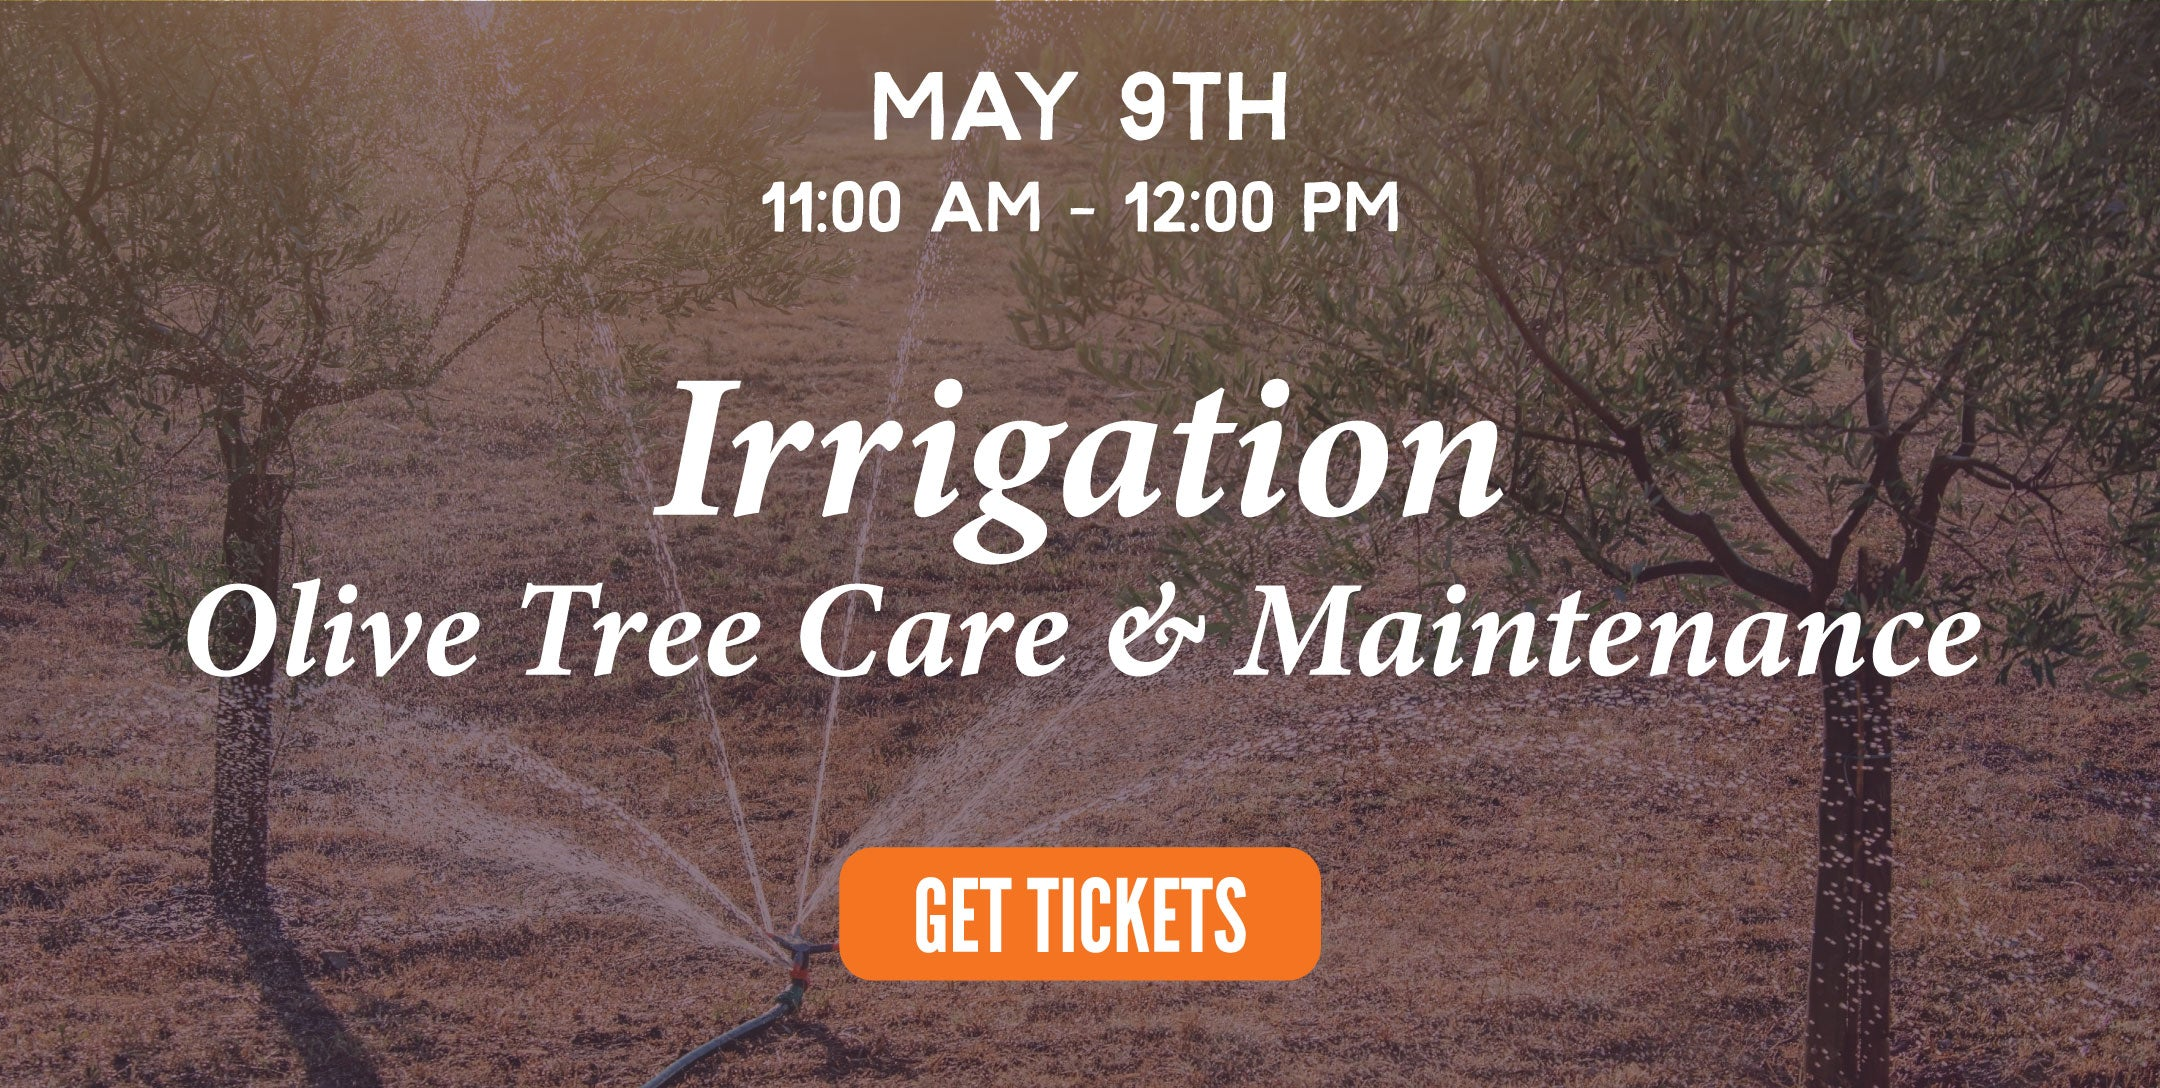 irrigation | texas hill country olive co.